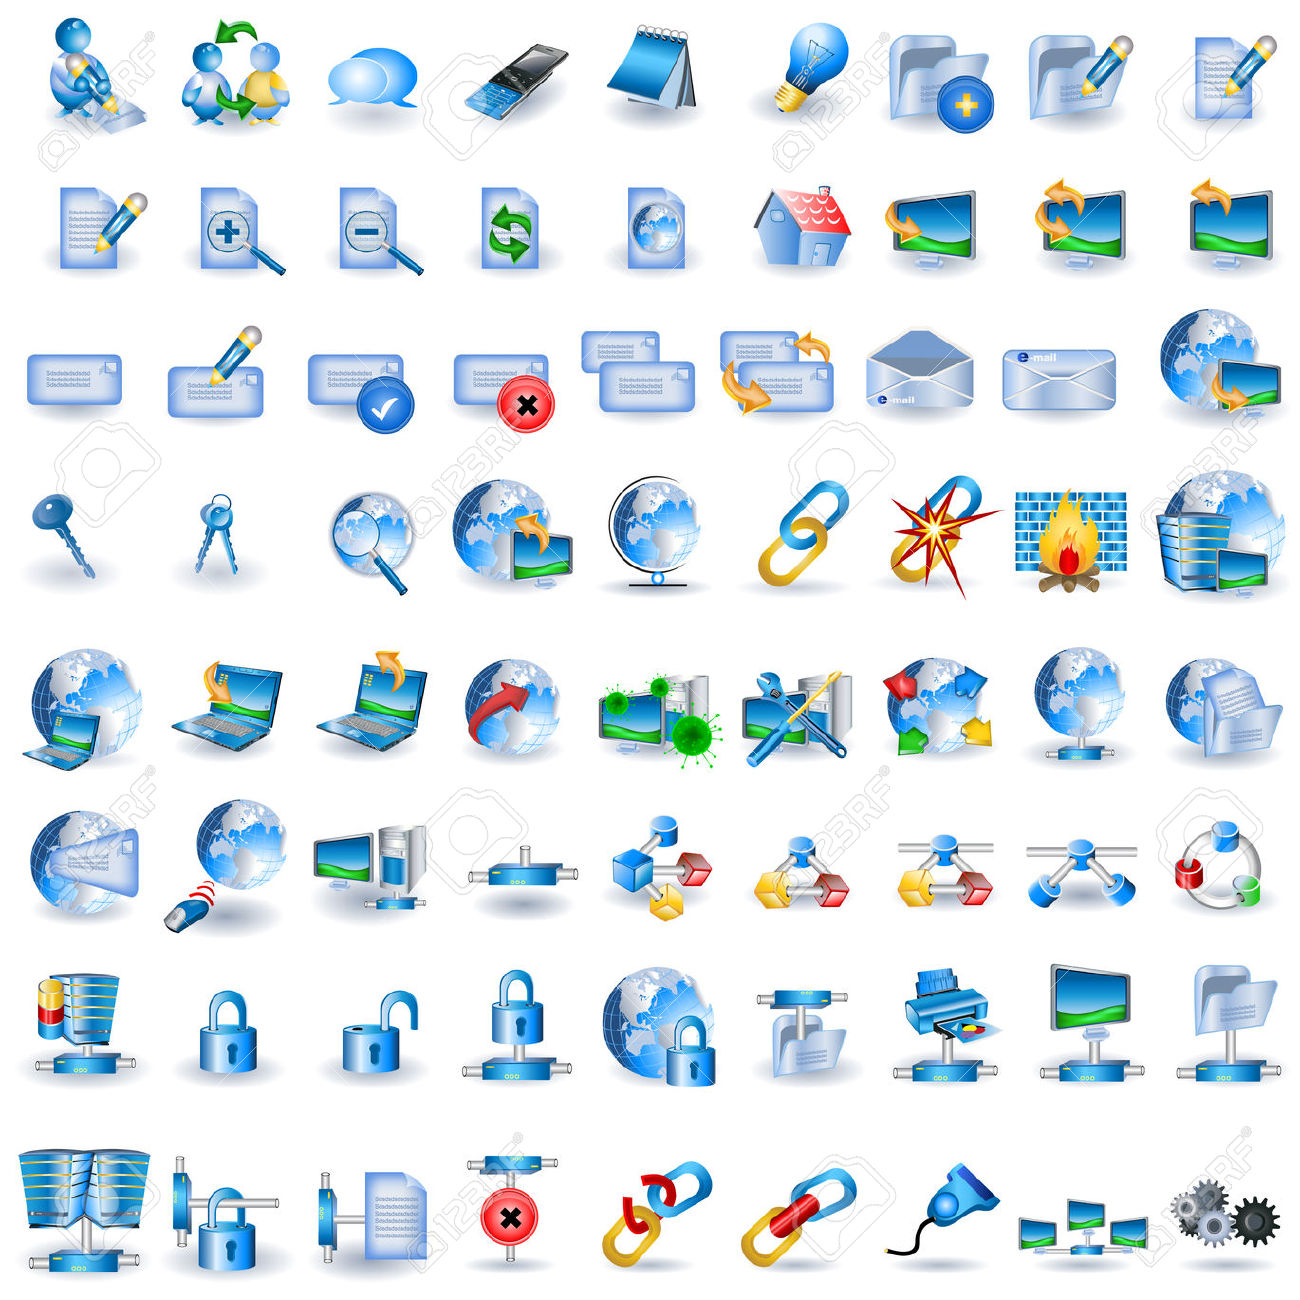 network clipart collection #20